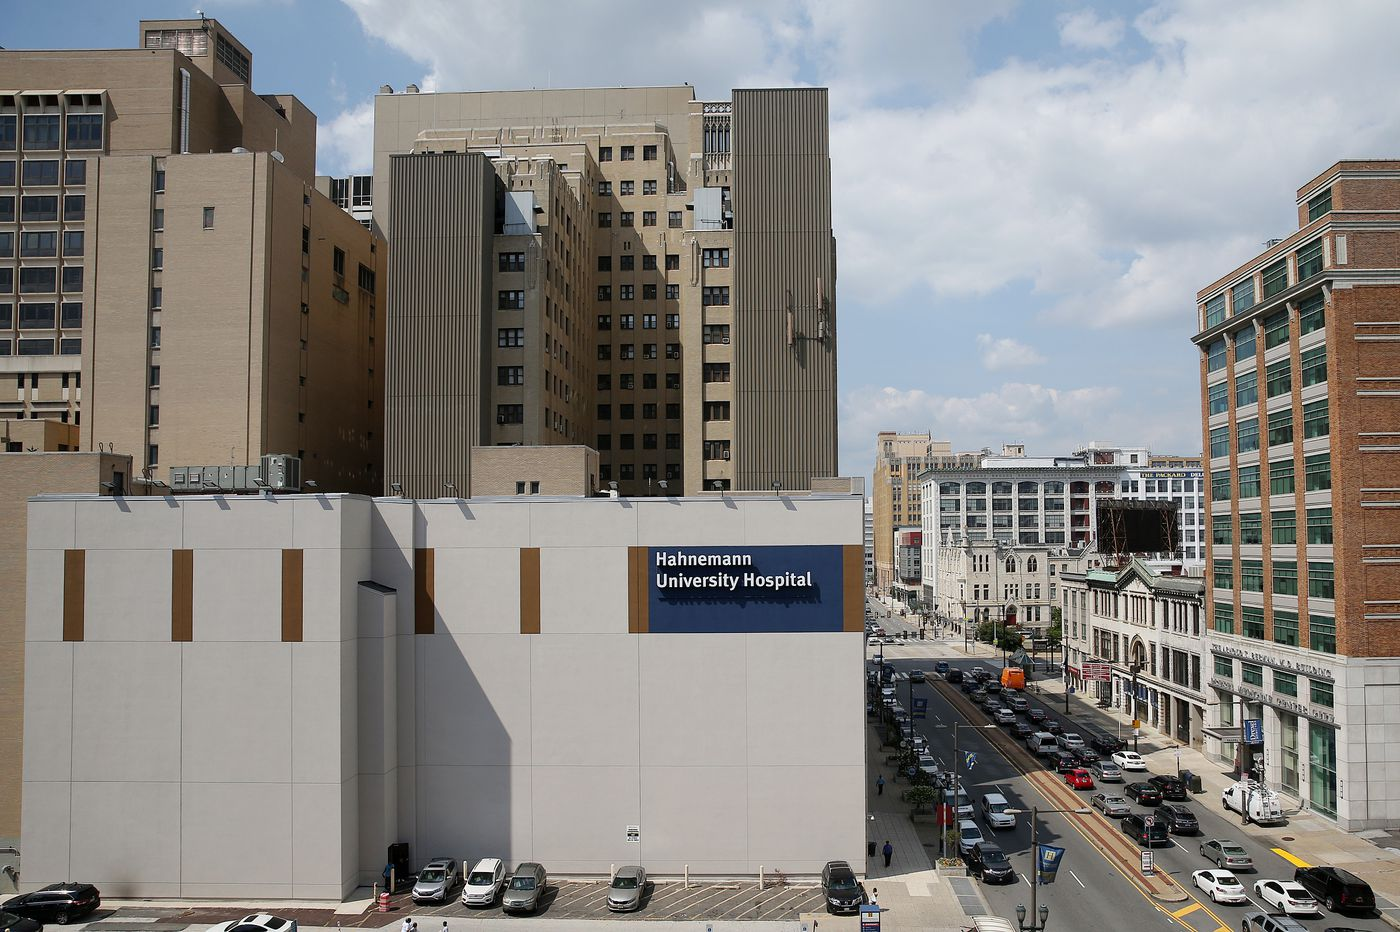 Hahnemann University Hospital gets higher bid from California firm